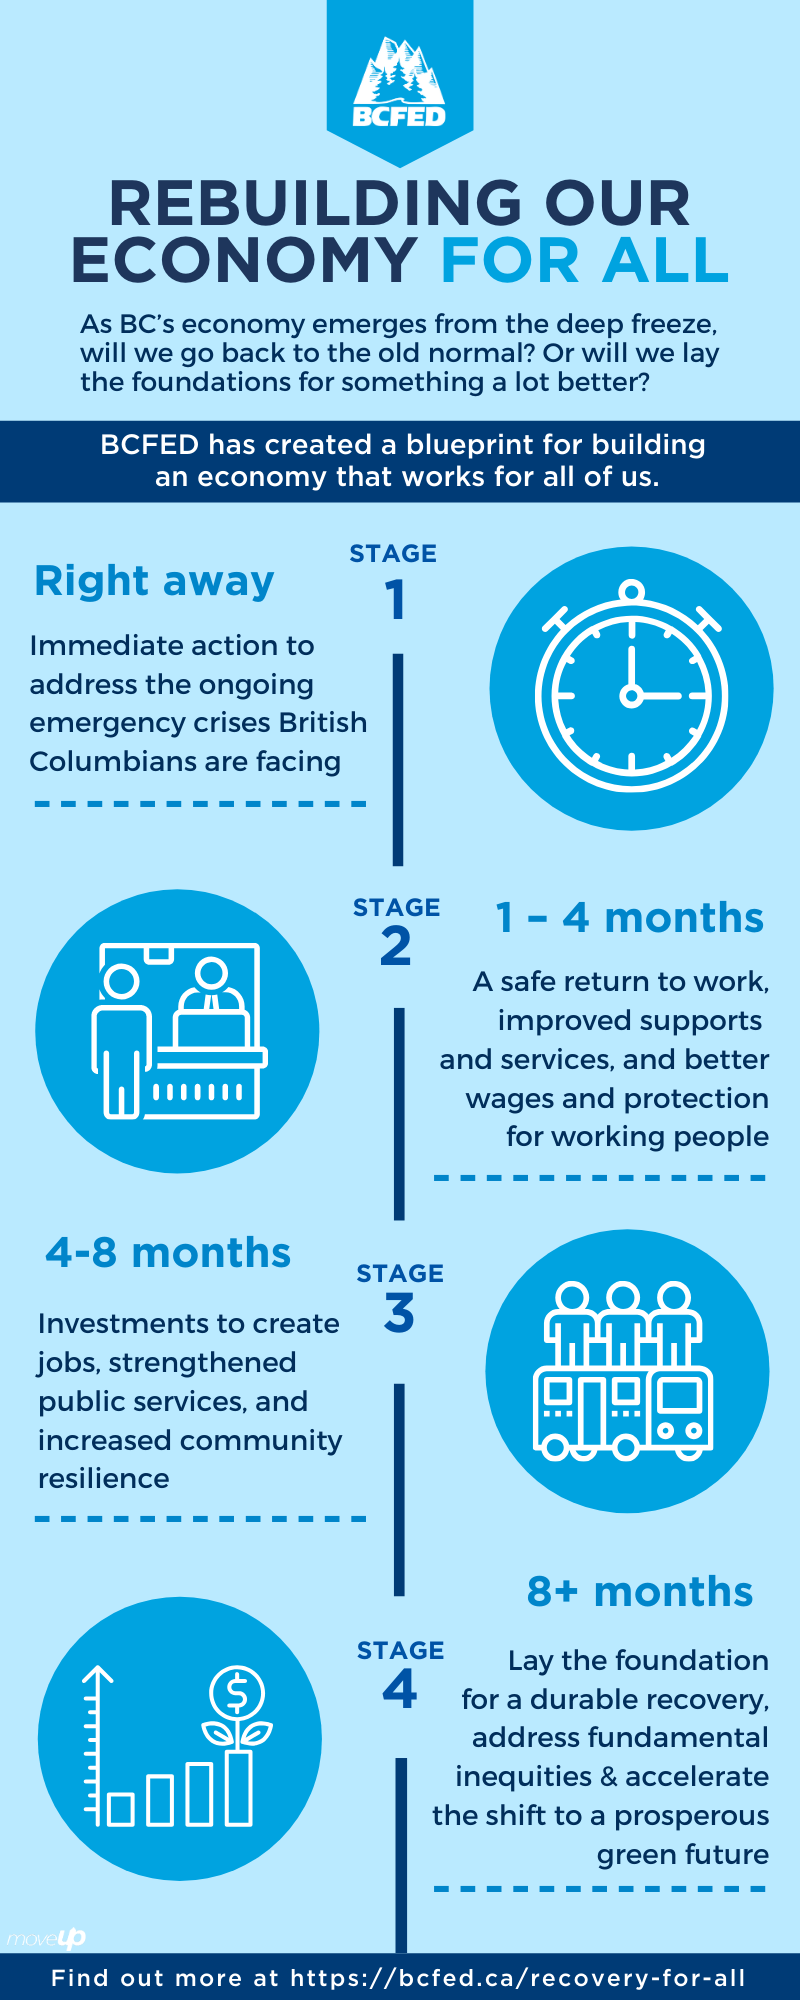 Rebuilding our economy for all: Infographic describing the four phases of recovery listed above